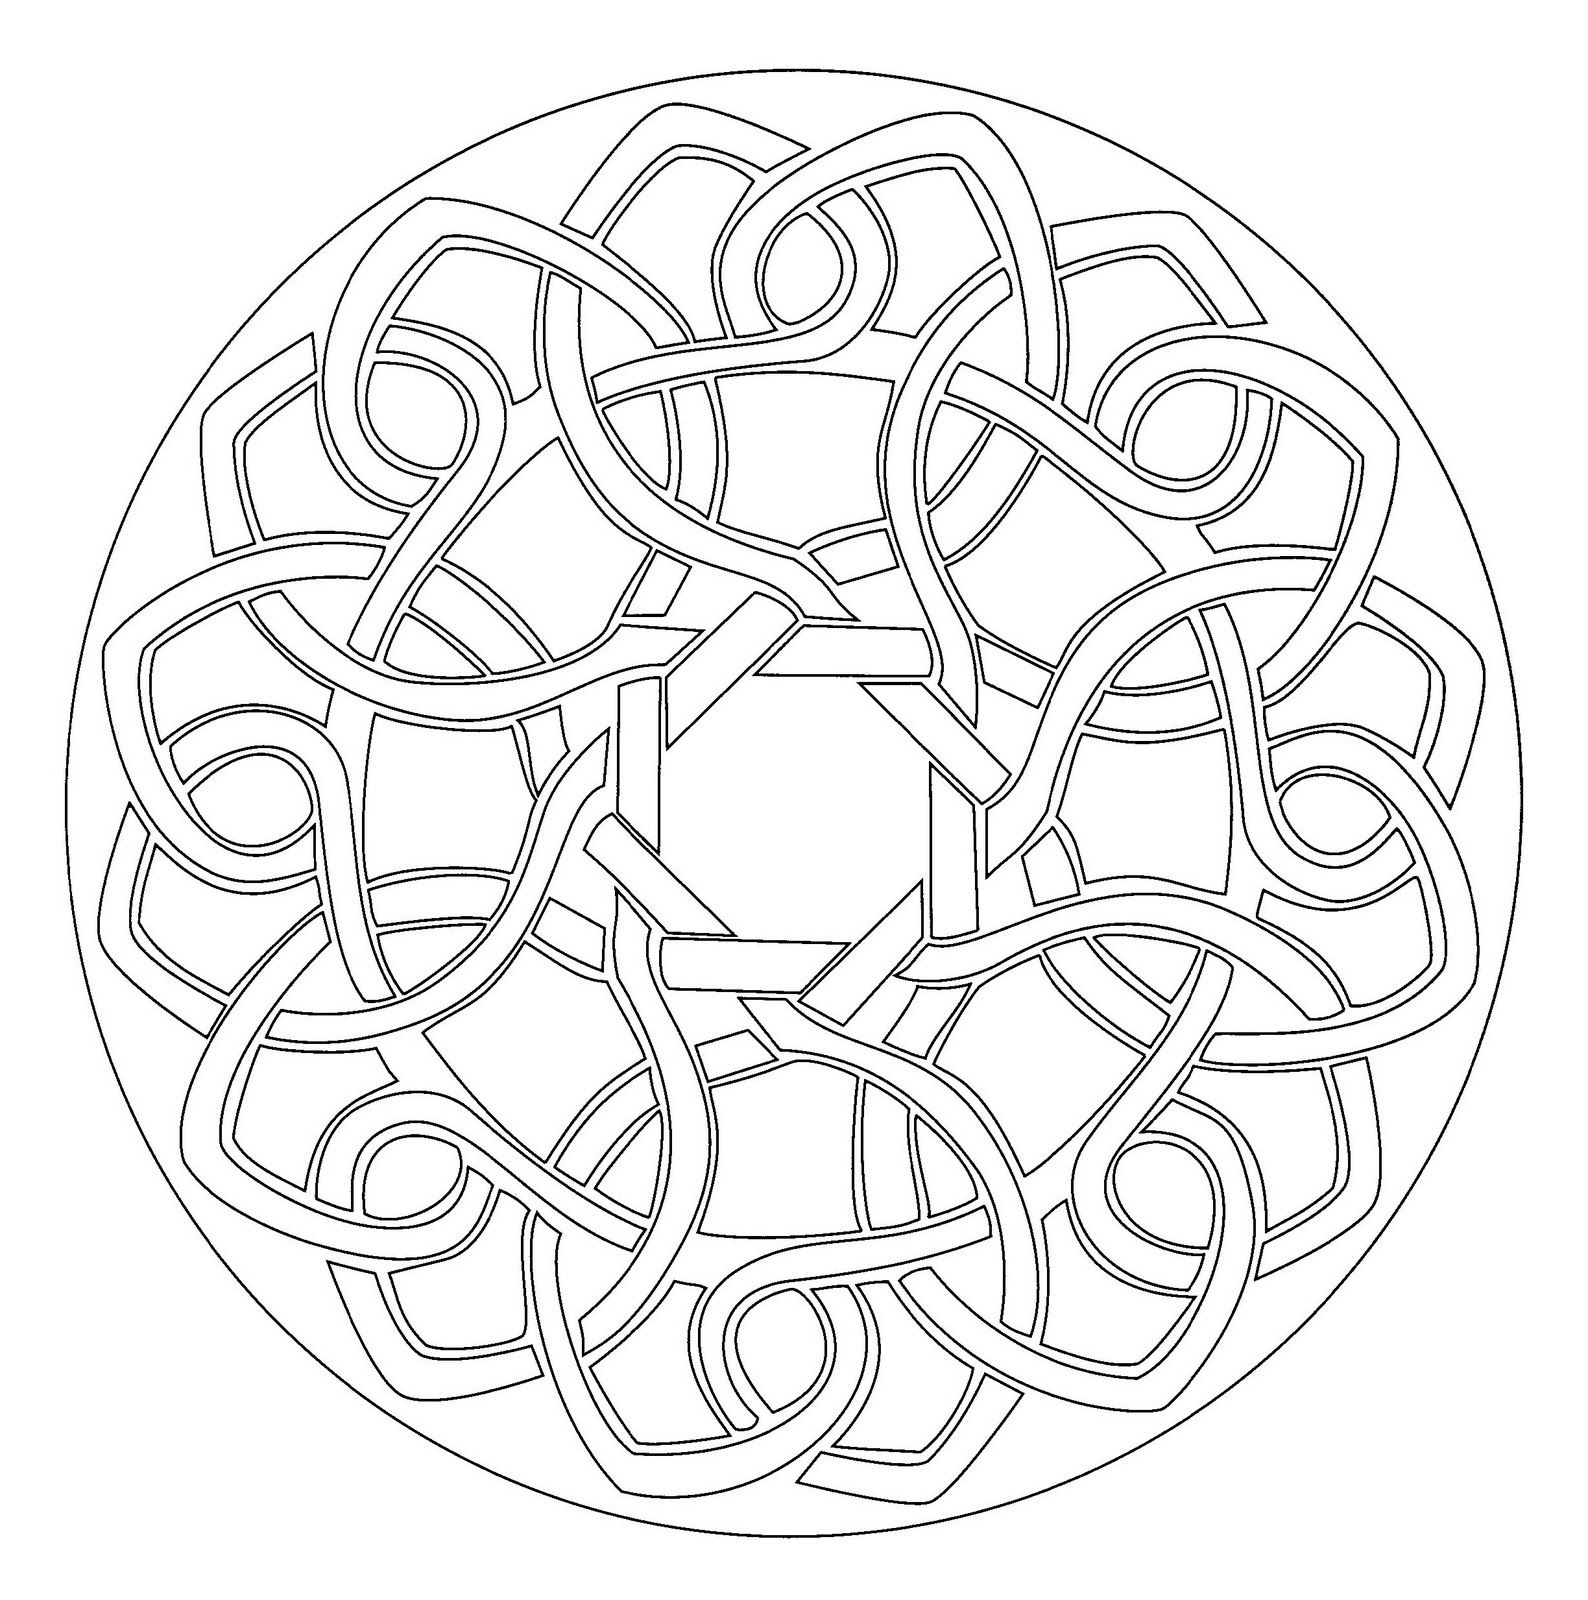 sacred geometry coloring pages - Google Search | Colouring ...